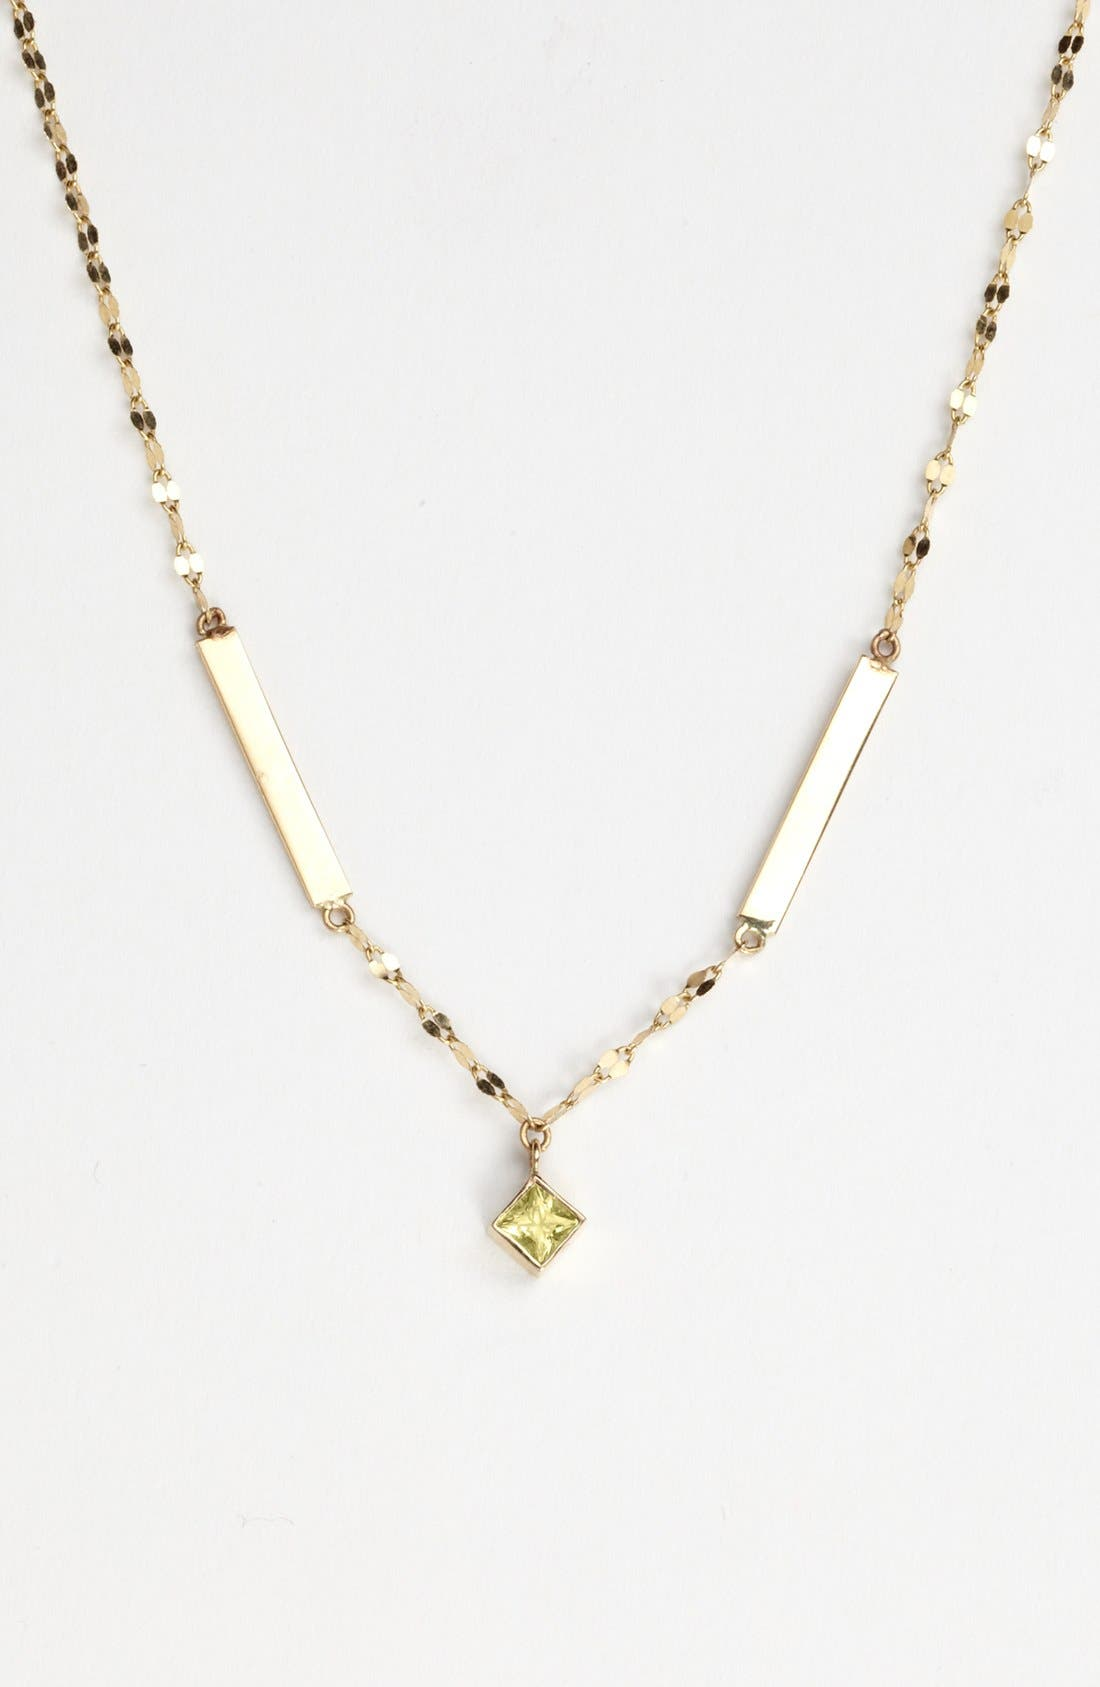 Main Image - Lana Jewelry Sapphire & Bar Necklace